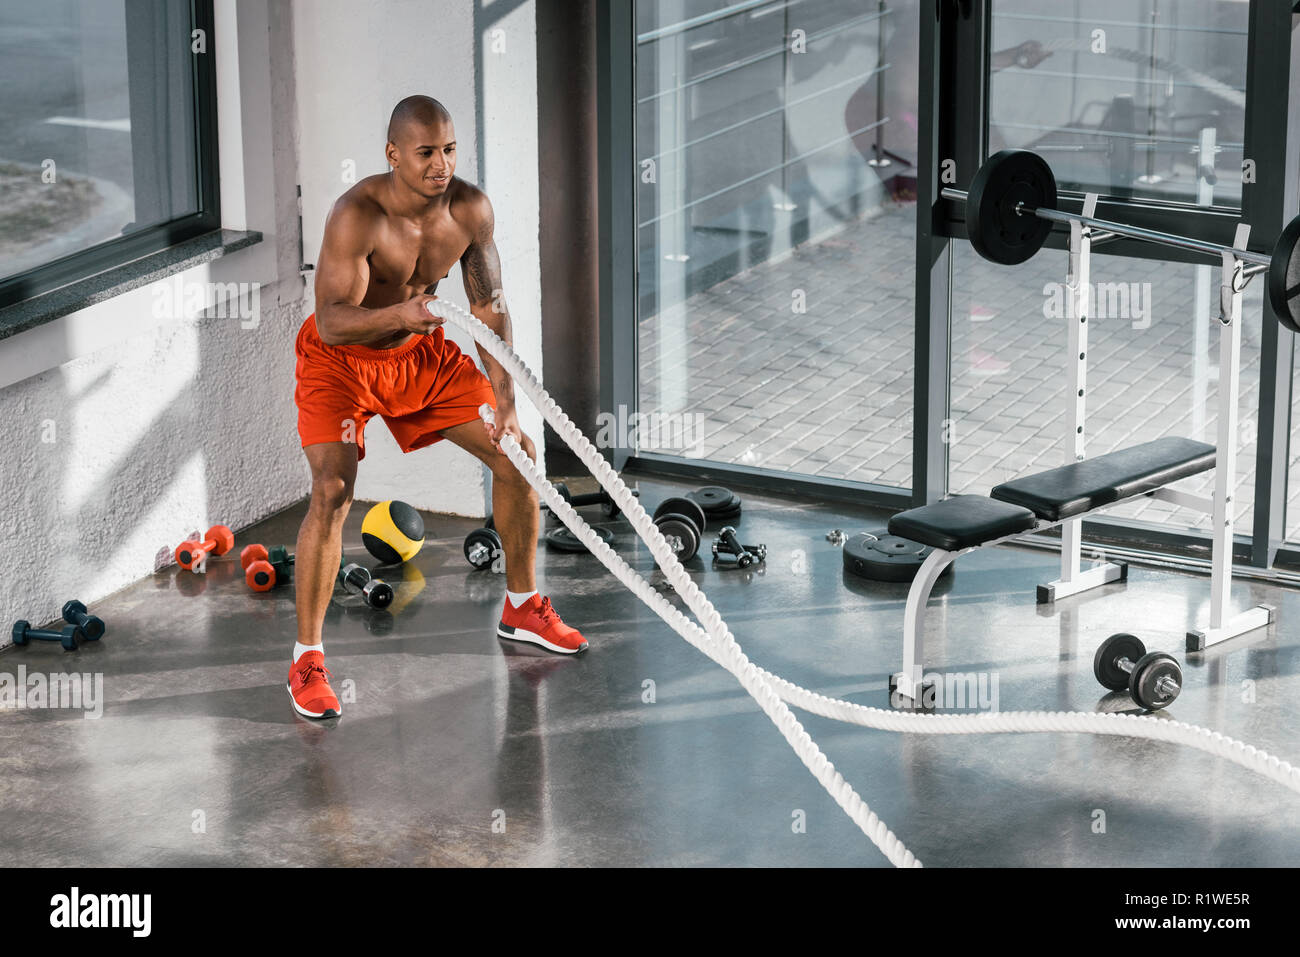 high angle view of african american athlete working out with battle ropes at gym - Stock Image